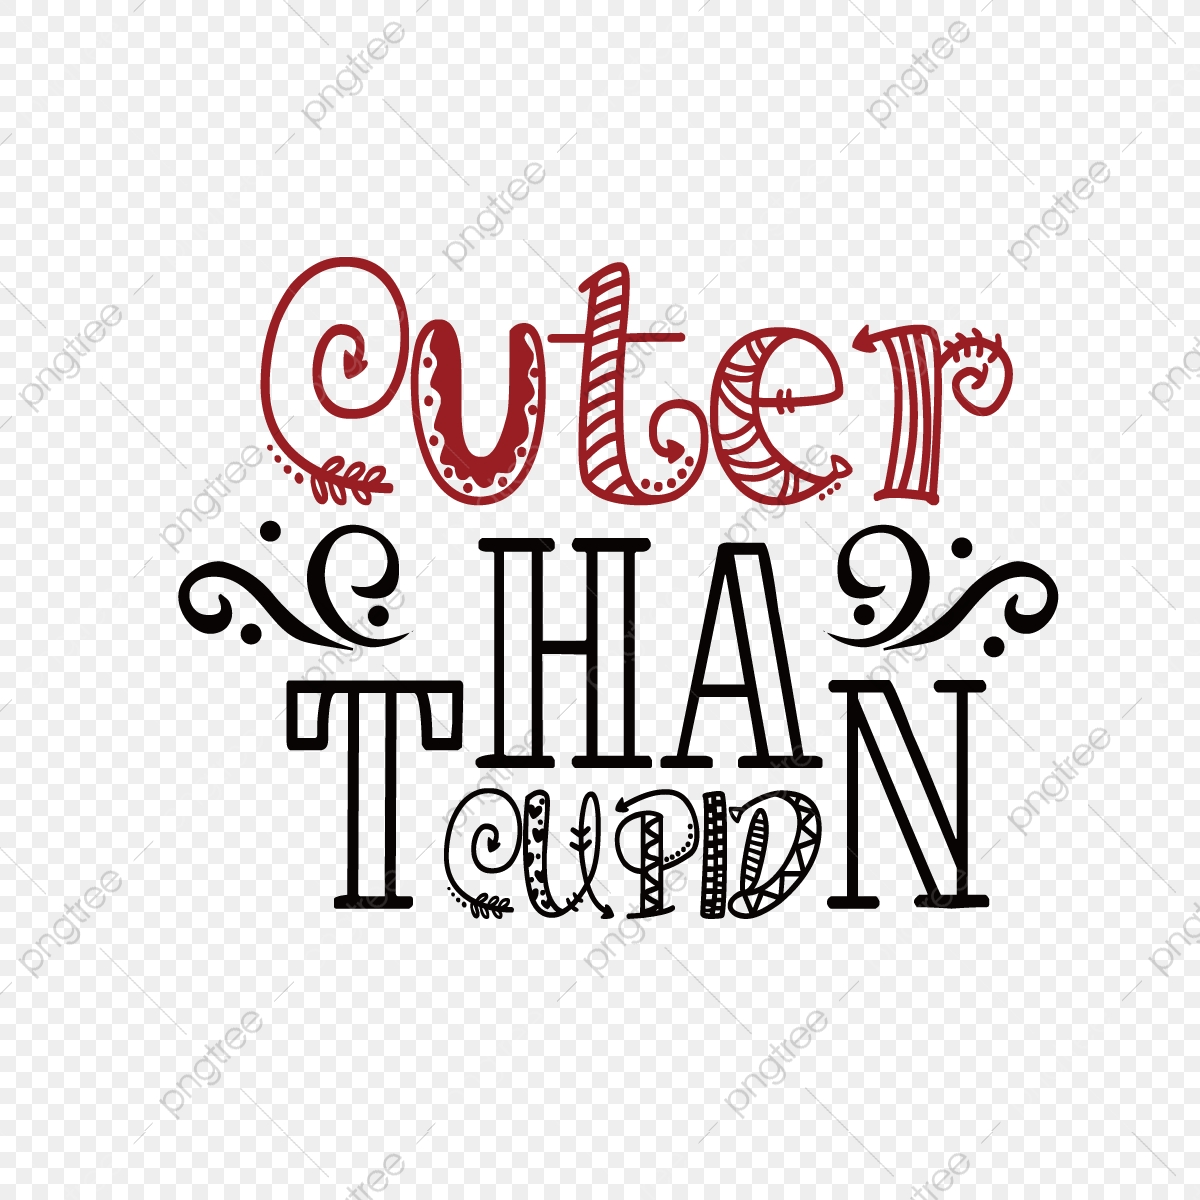 Black Than Cupid Cute Phrase Svg Art Word Font Effect Eps For Free Download